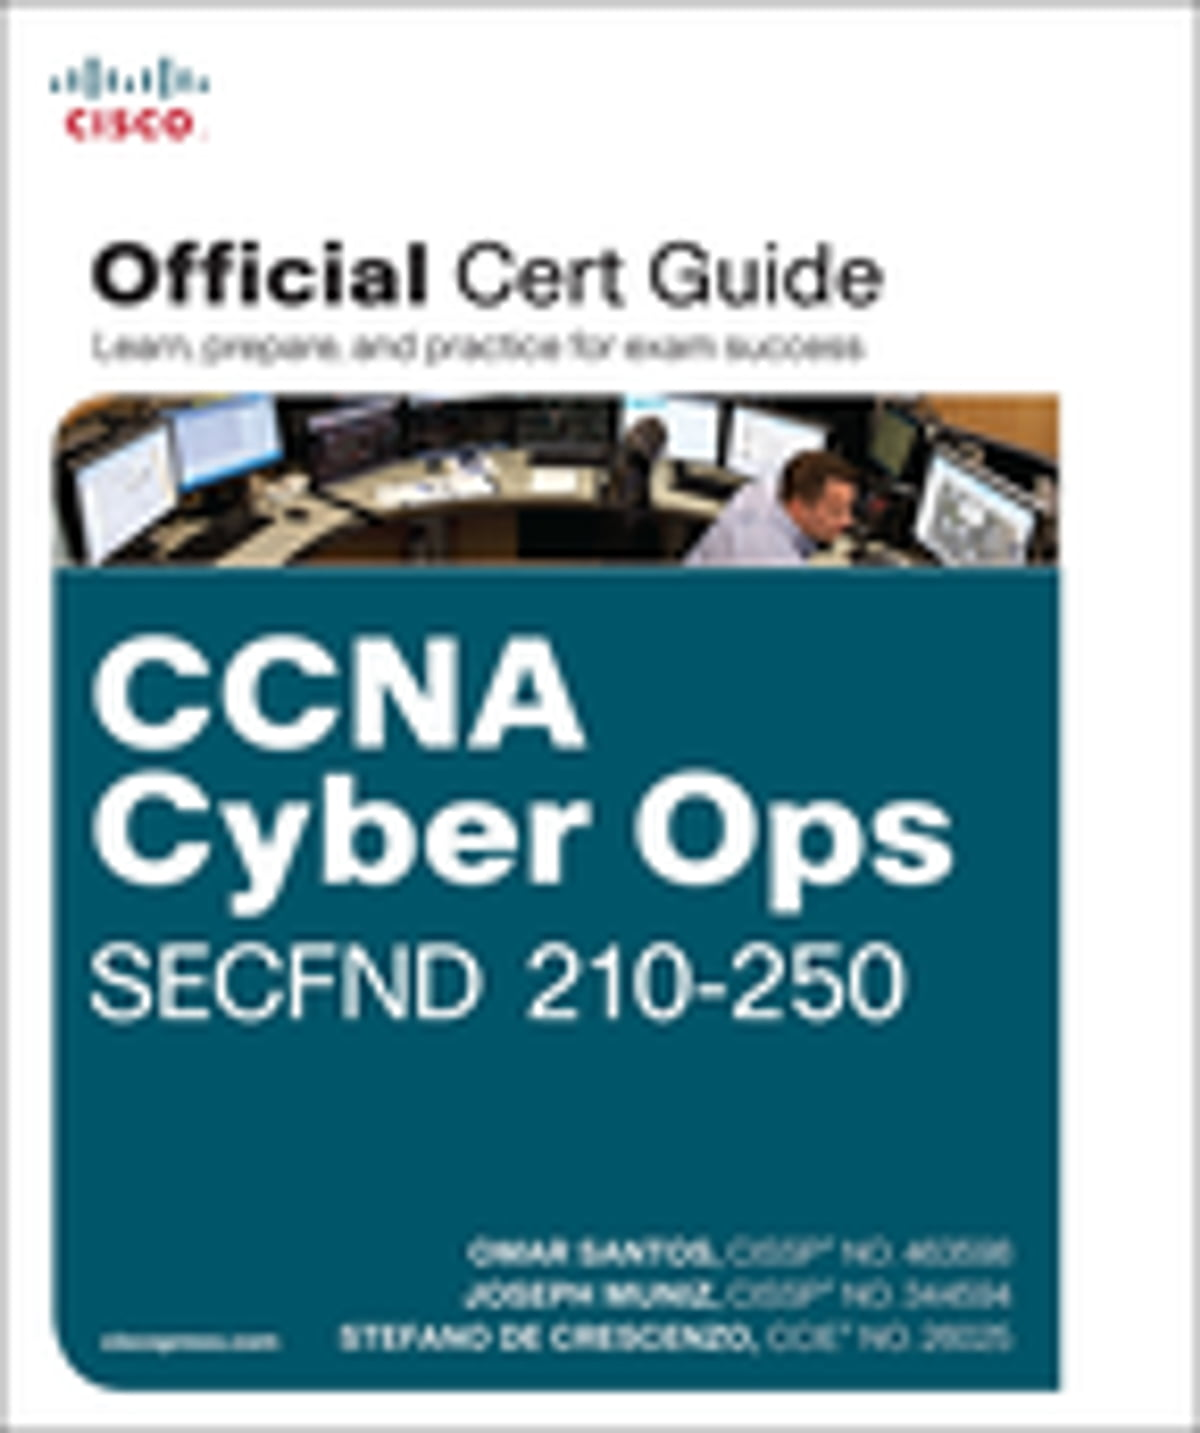 Ccna cyber ops secfnd 210 250 official cert guide ebook by omar ccna cyber ops secfnd 210 250 official cert guide ebook by omar santos 9780134608990 rakuten kobo xflitez Images